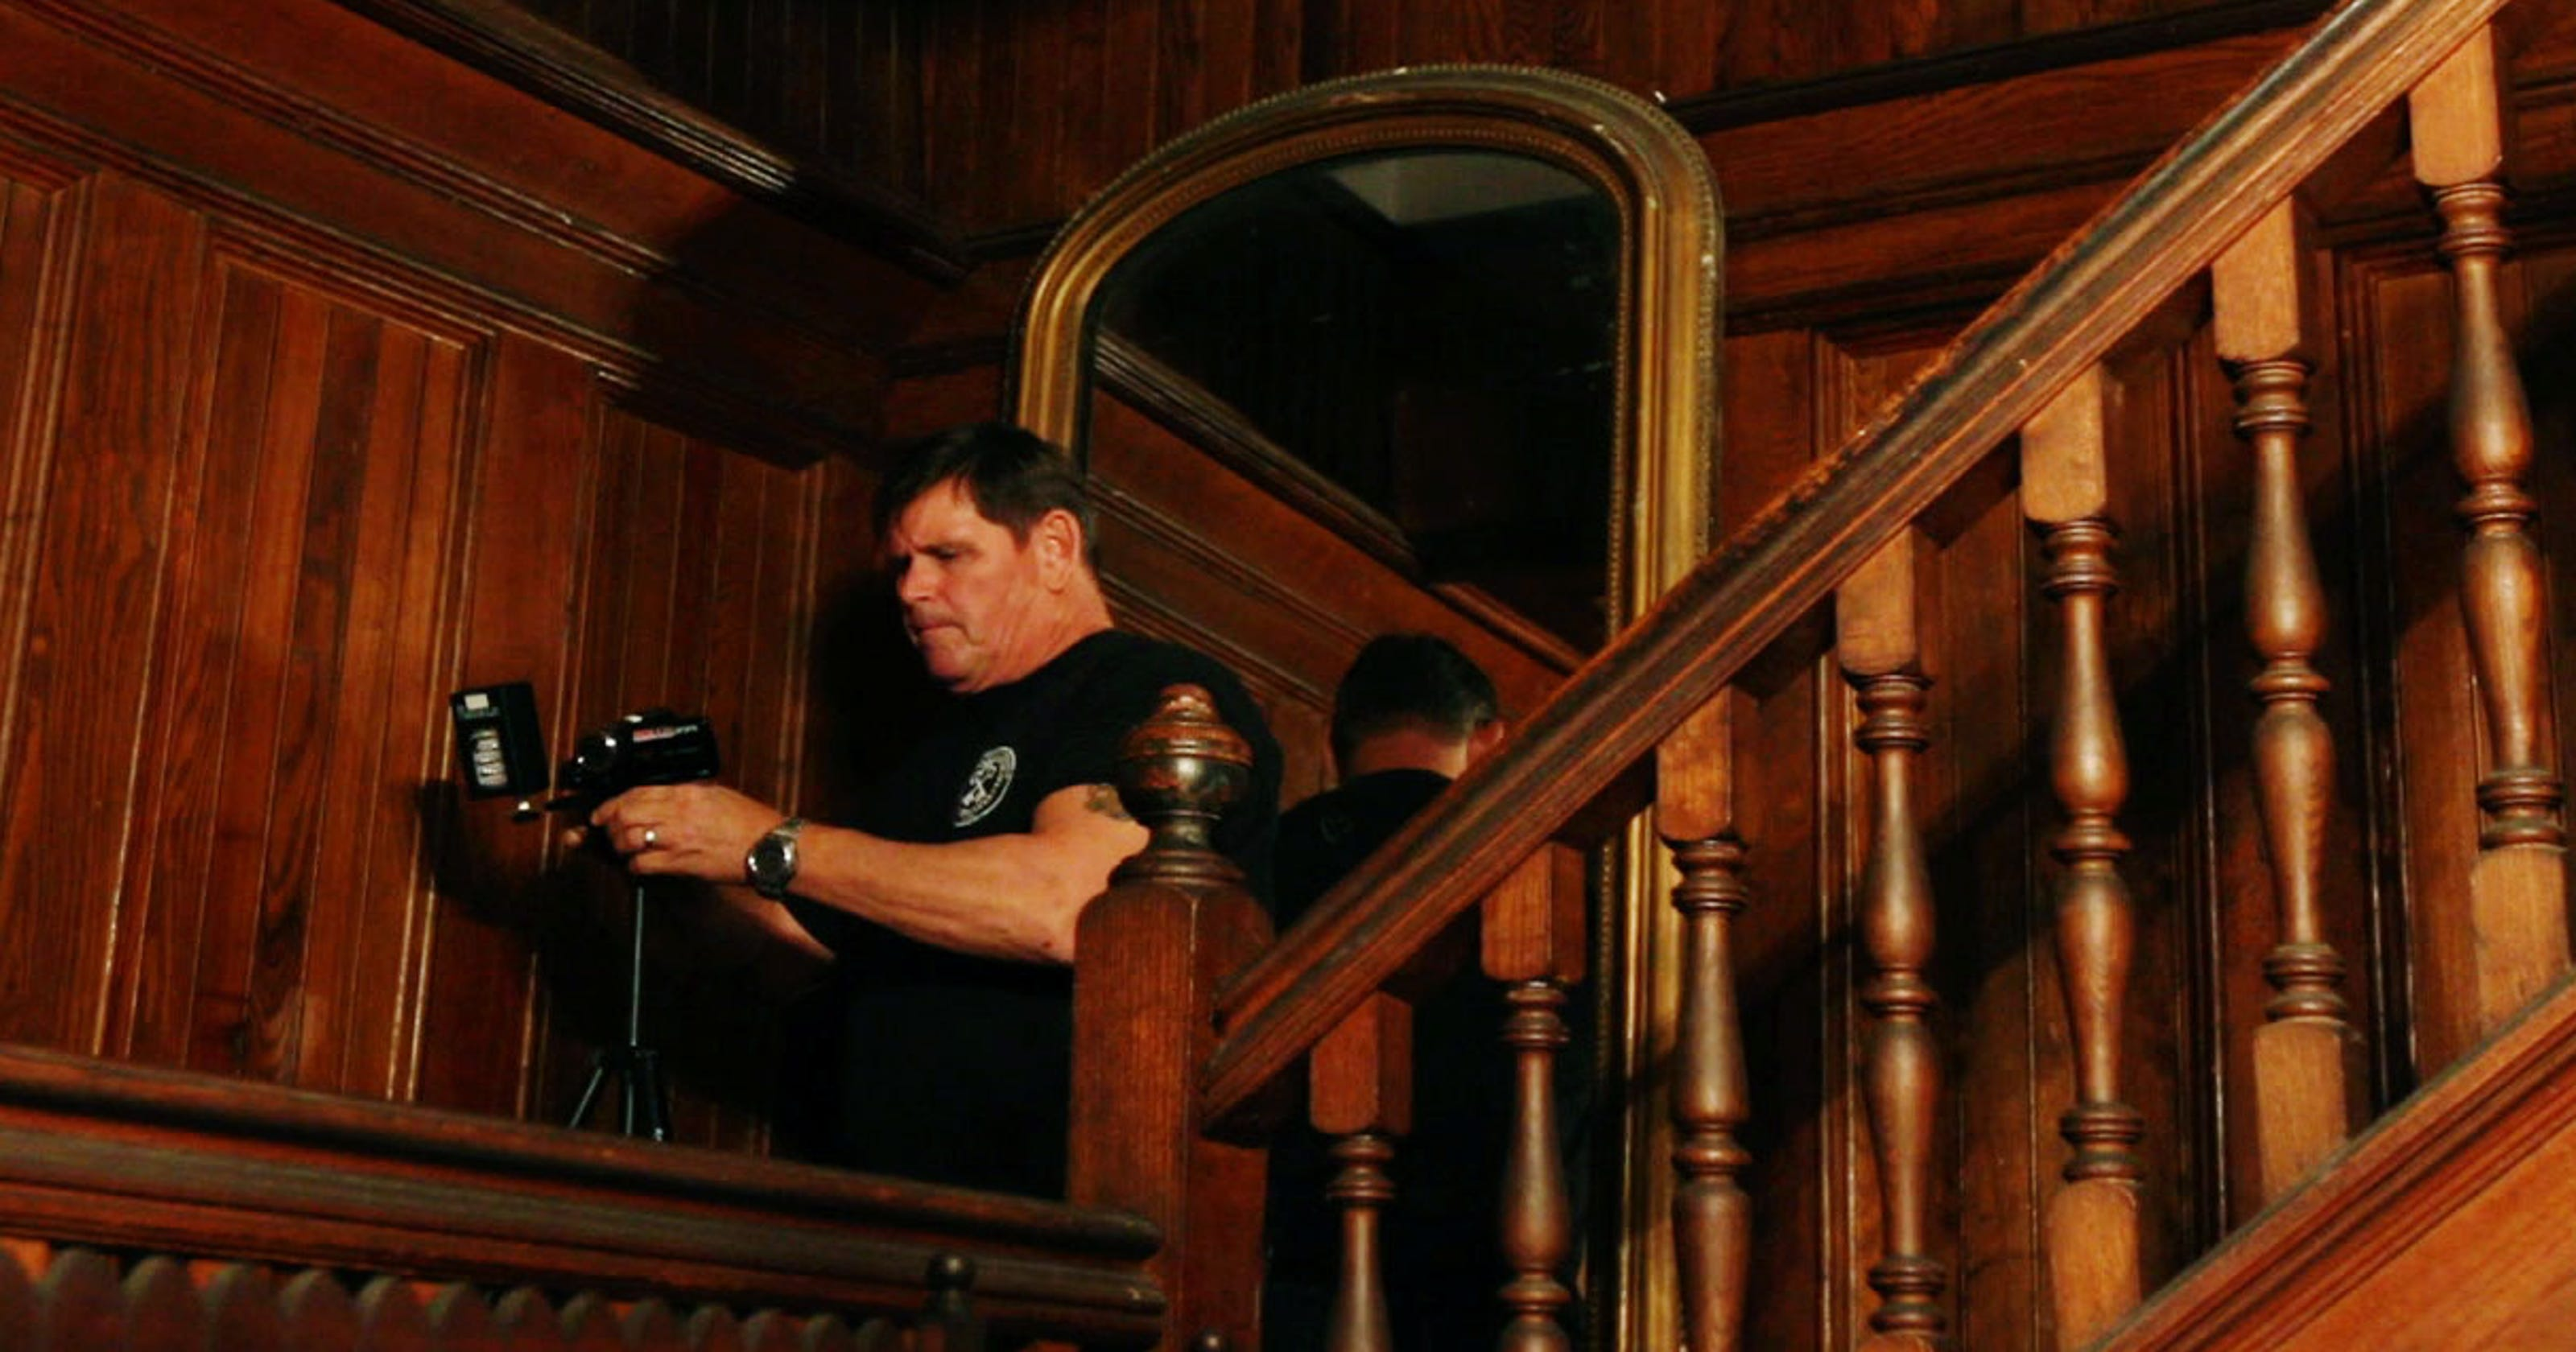 Ghost hunt: Could Strauss Mansion be haunted?